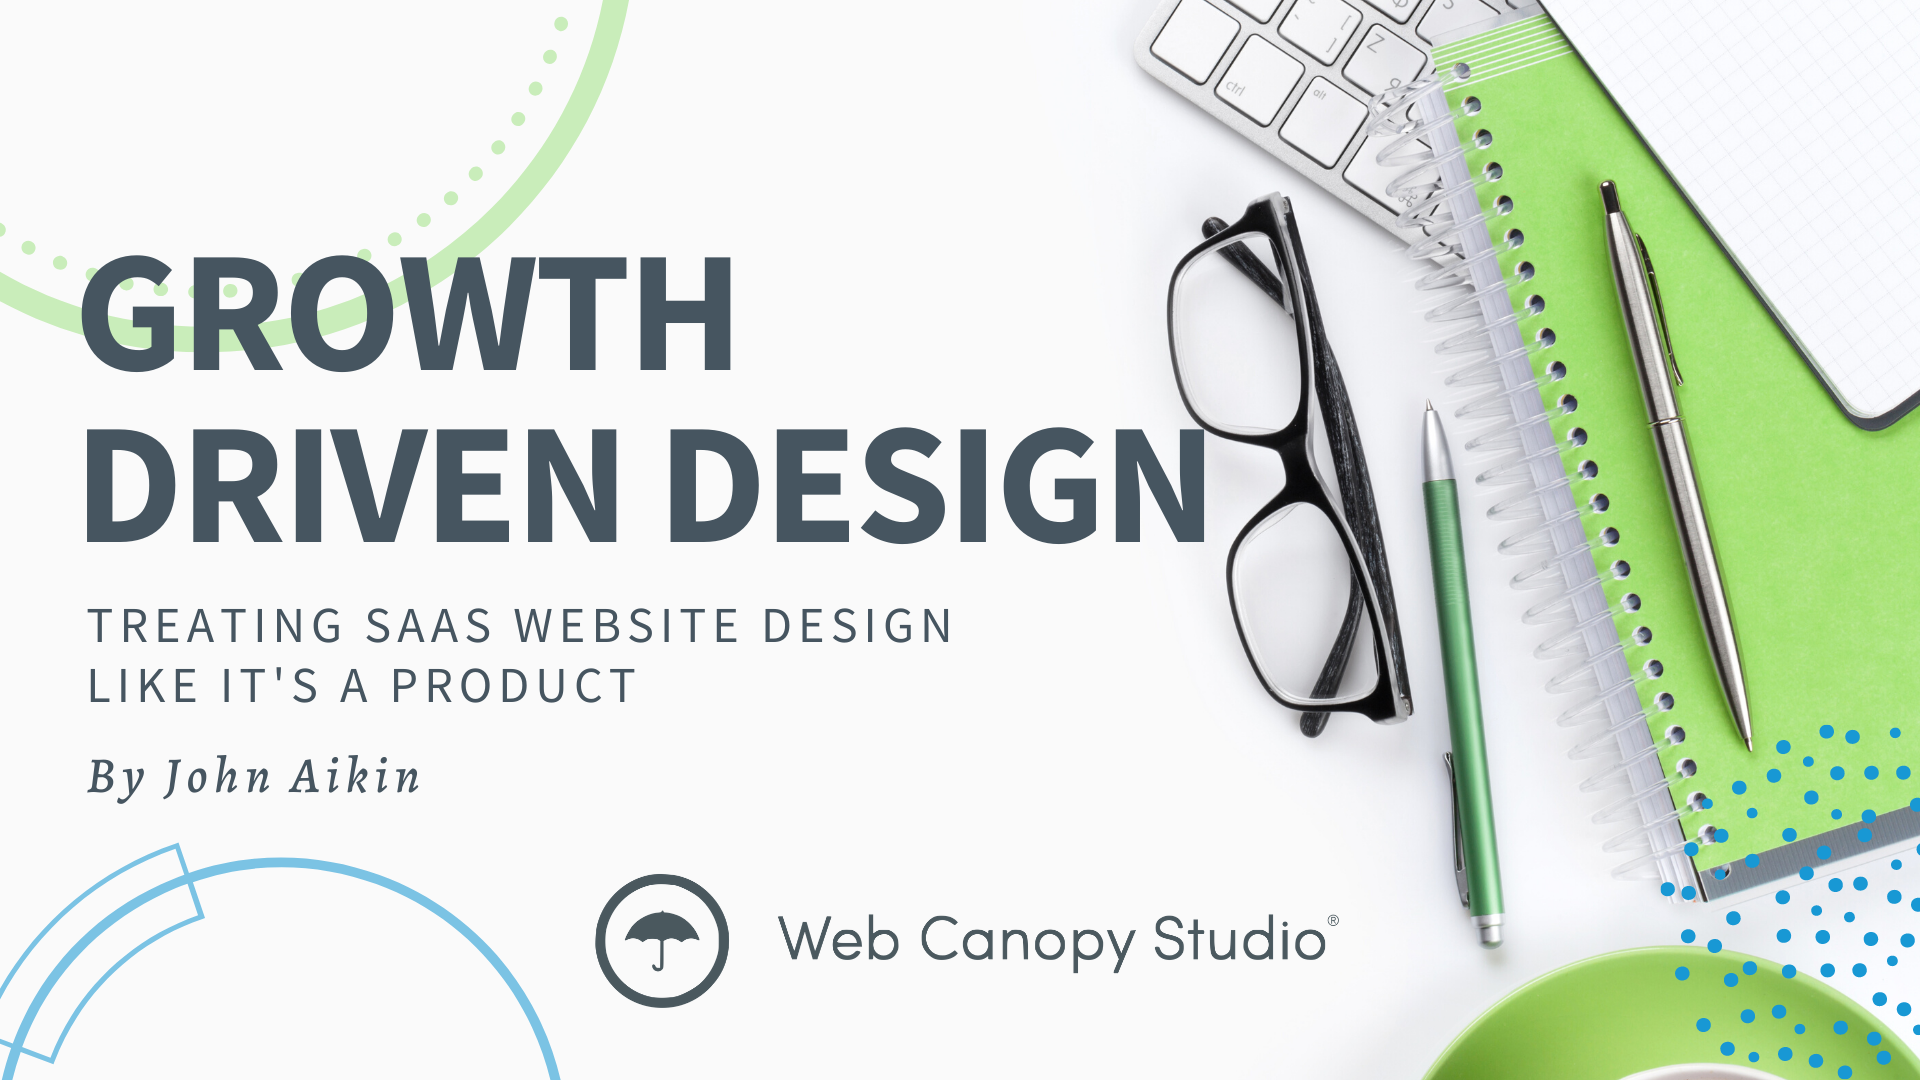 How do you increase the performance of your website? Growth driven design is an agile approach to development. Treating your SaaS website design like a product will increase your conversion rate